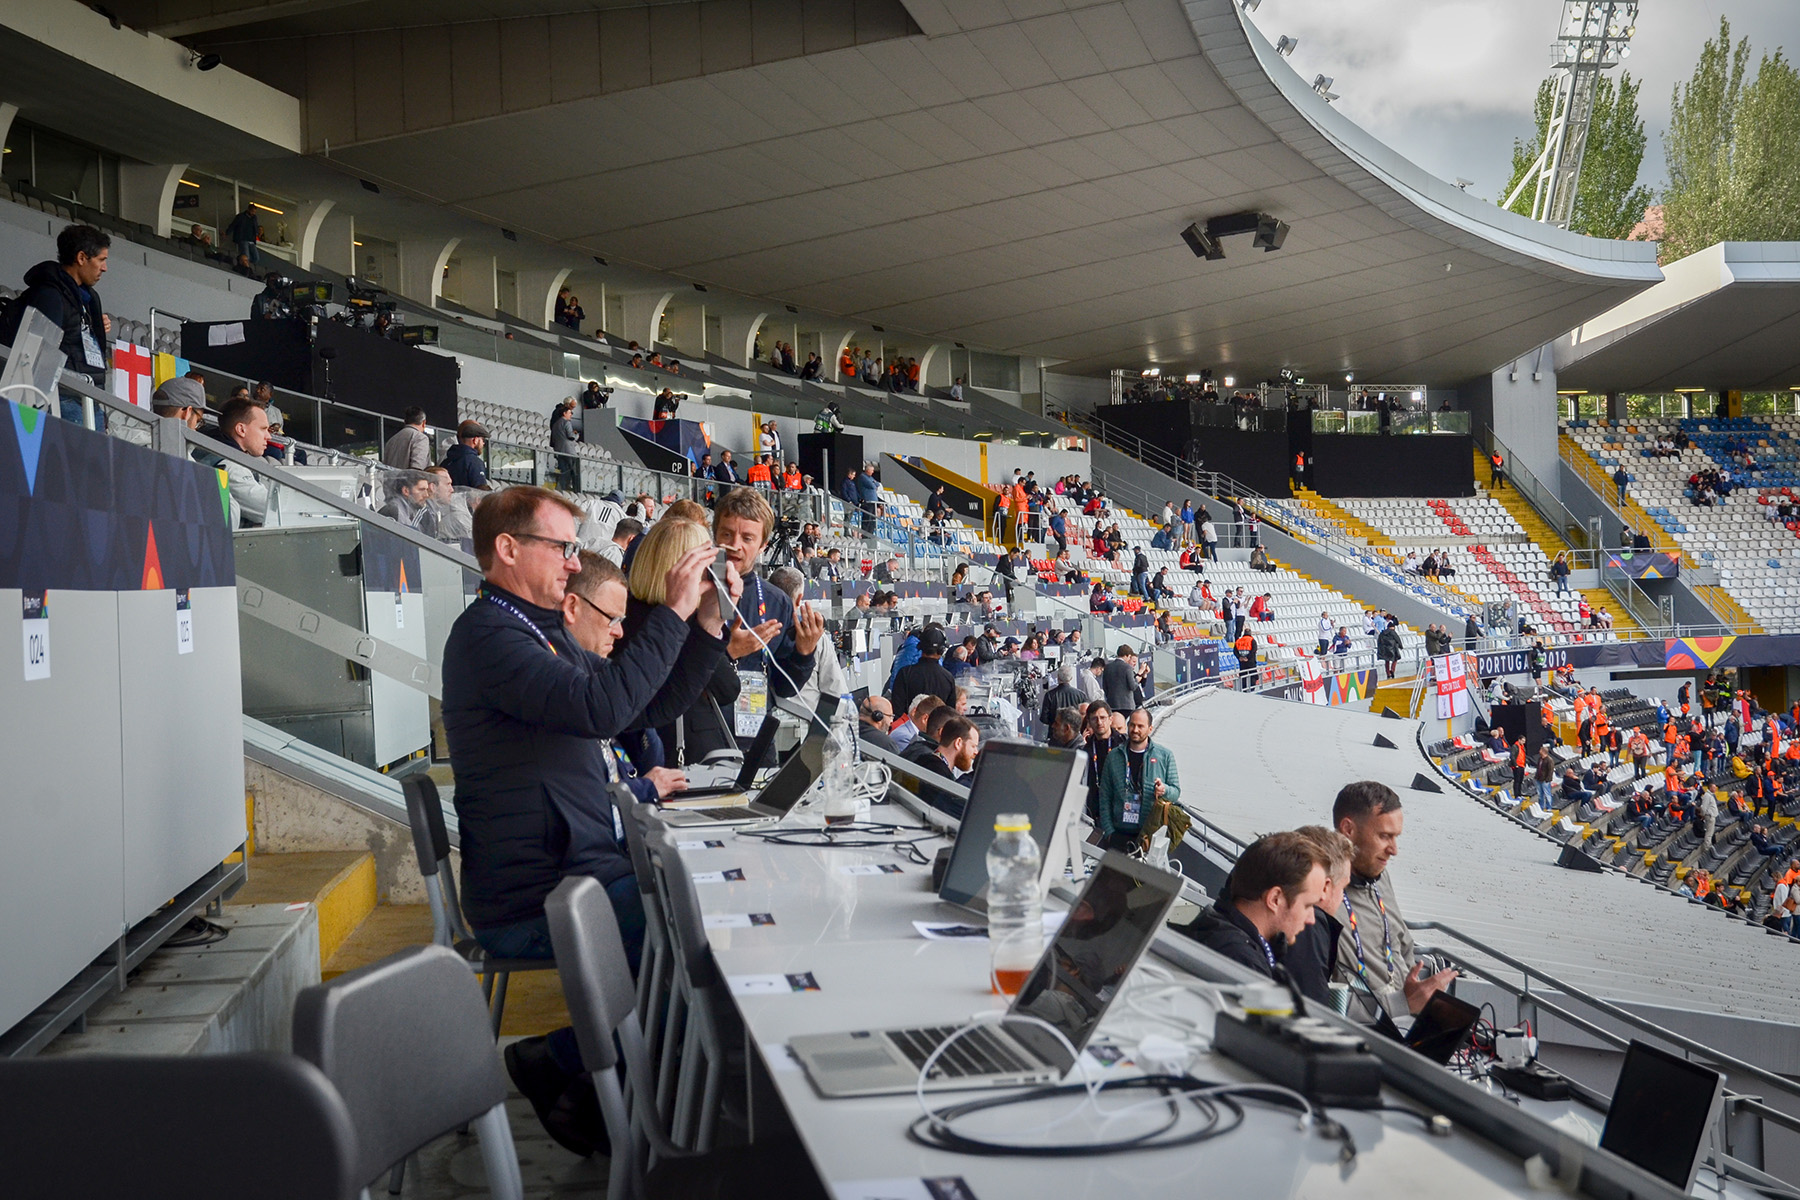 Freelance football journalists working at a match in Portugal